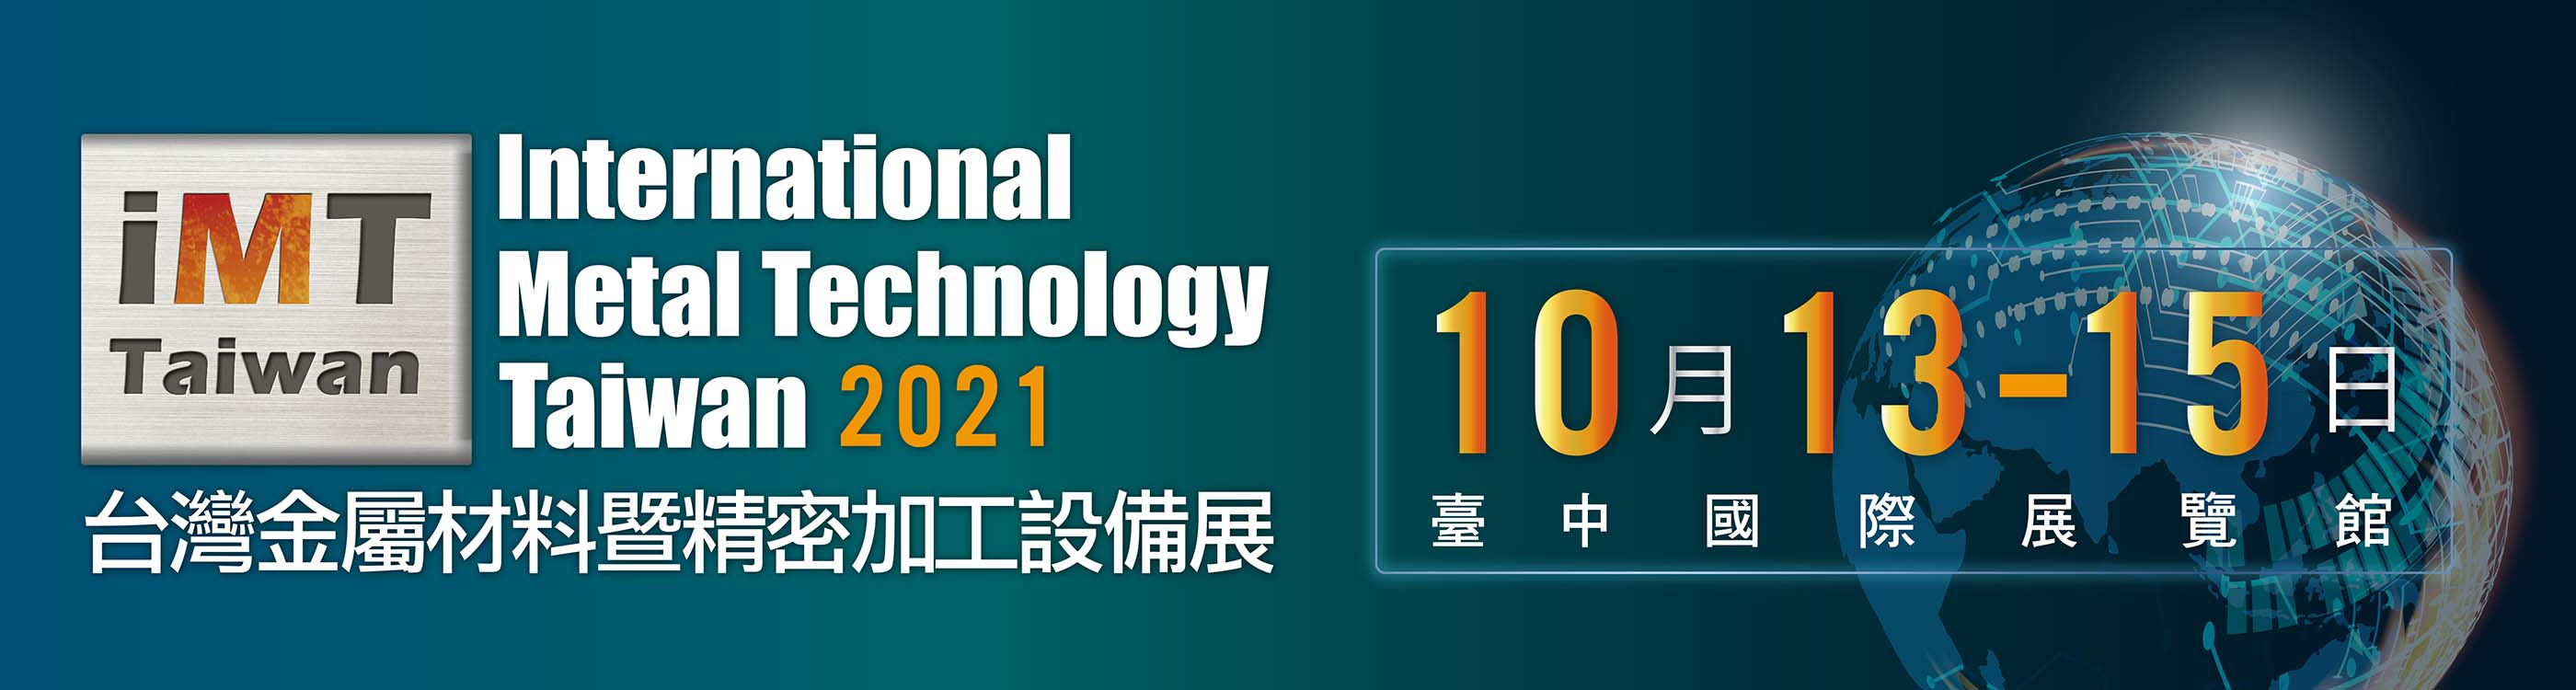 International Metal Technology Taiwan 2021